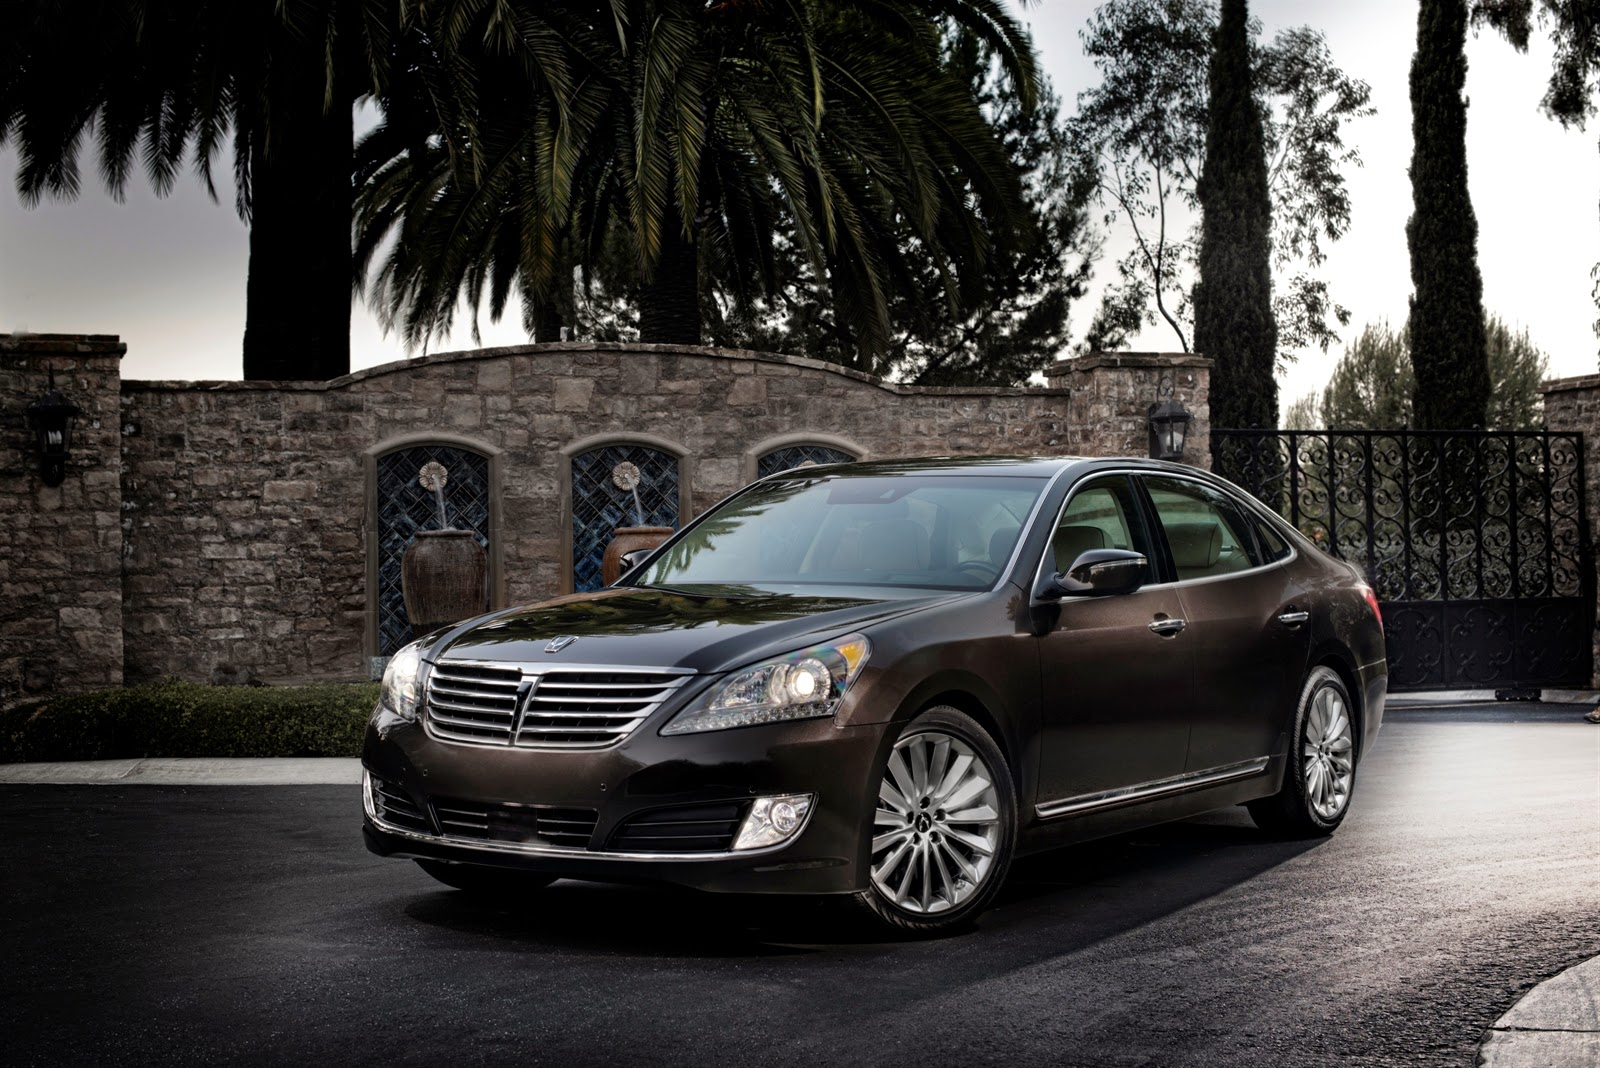 Just call the 2014 Equus 'Hyundai to the Max'